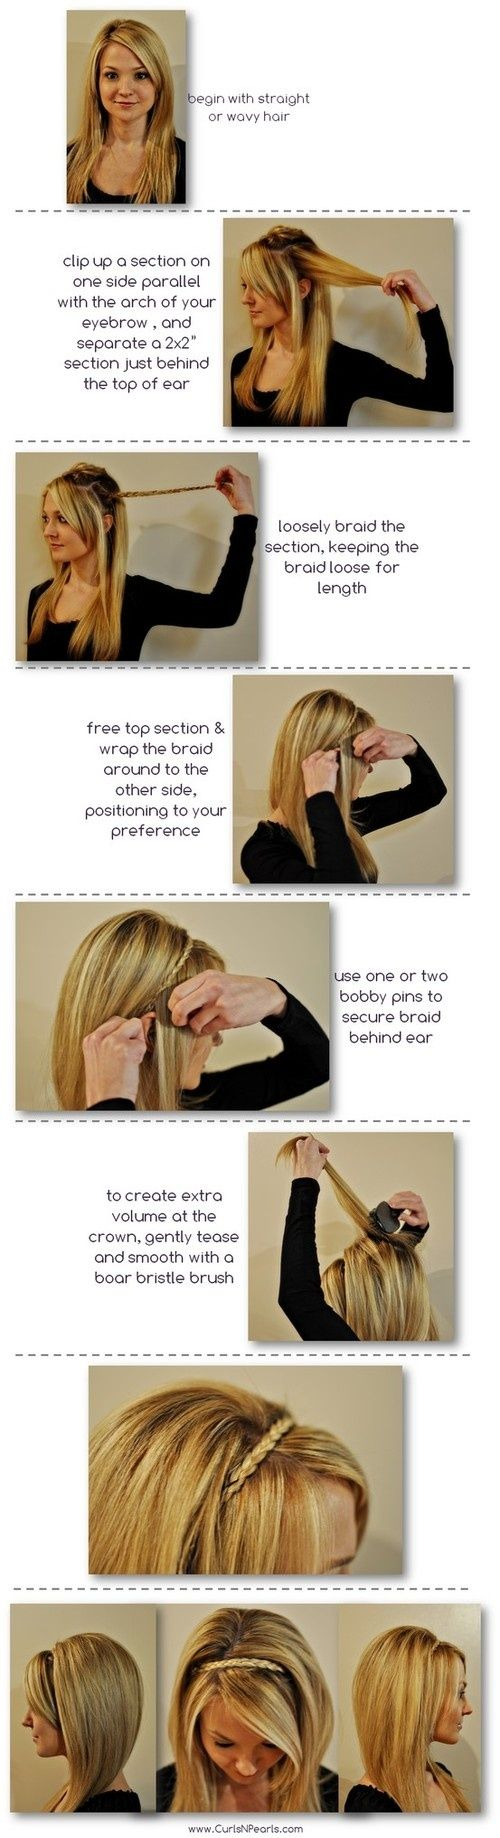 Headband Braid This Worked Great When I Tried! Just Spray The Bobby Pins  With